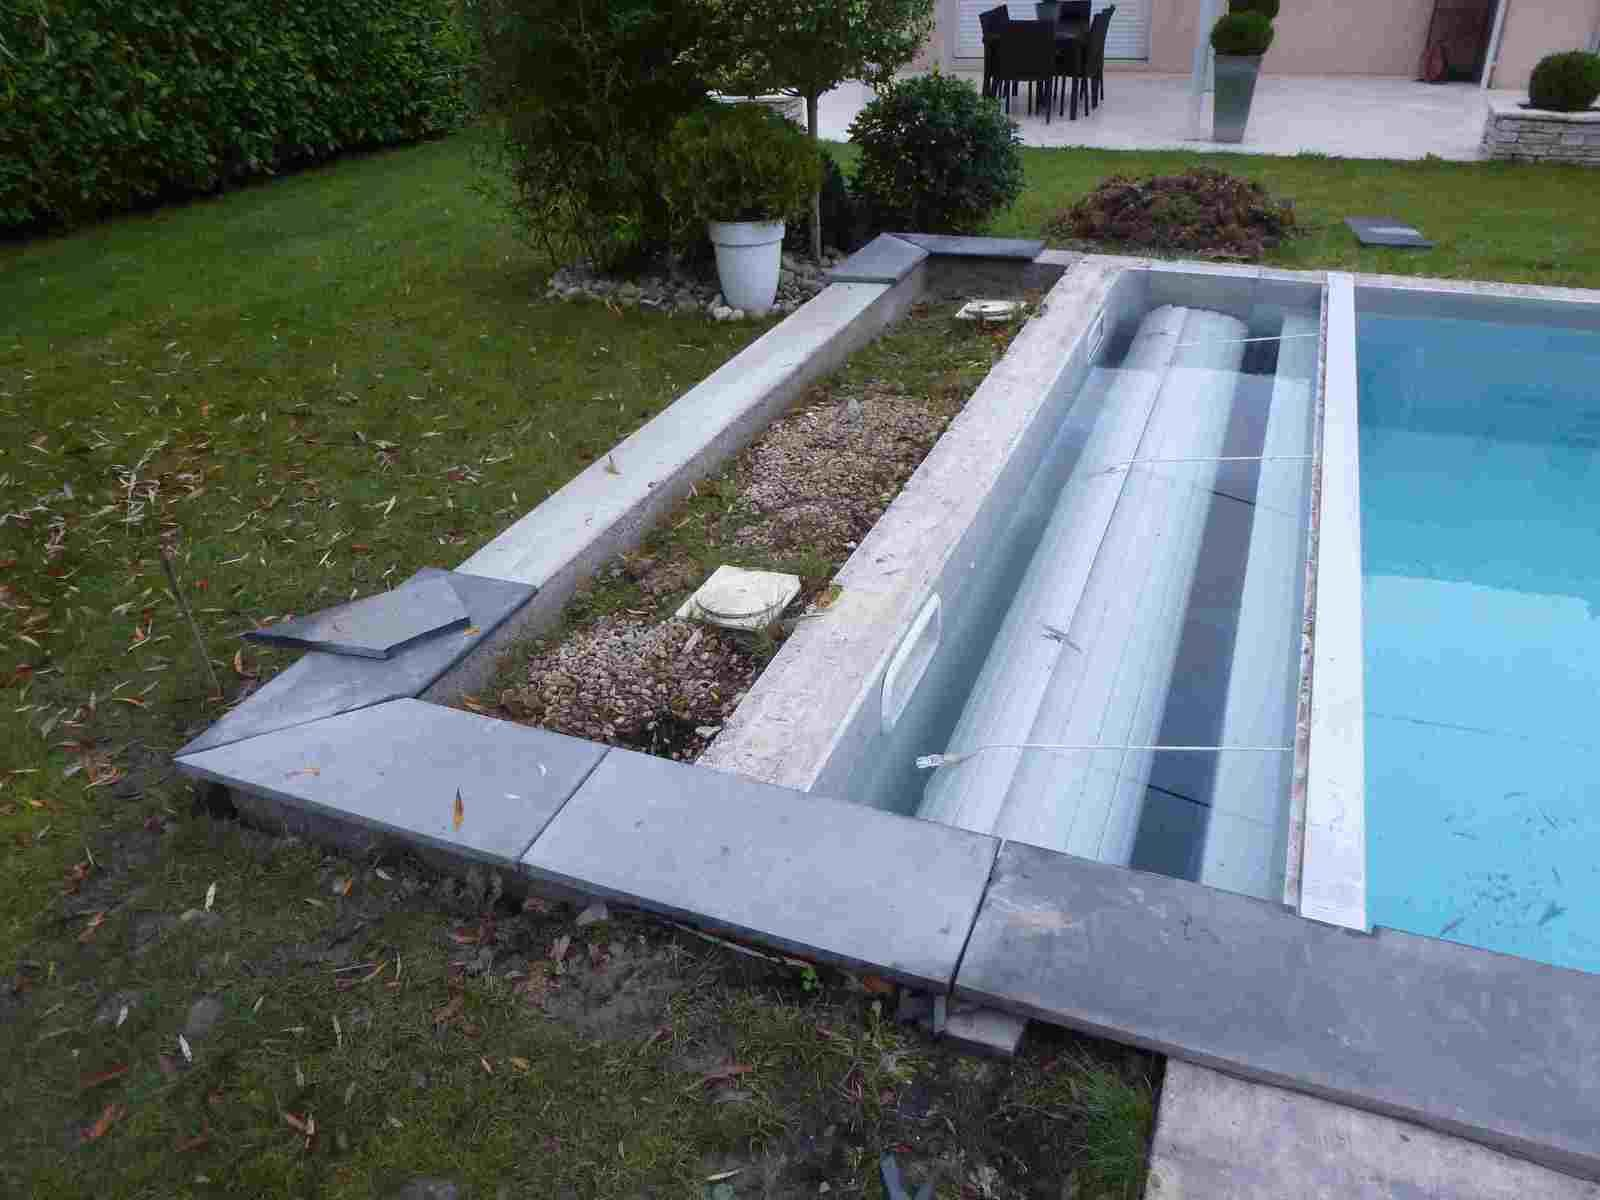 Charmant Rénovation Et/ou Pose De Margelles De Piscine